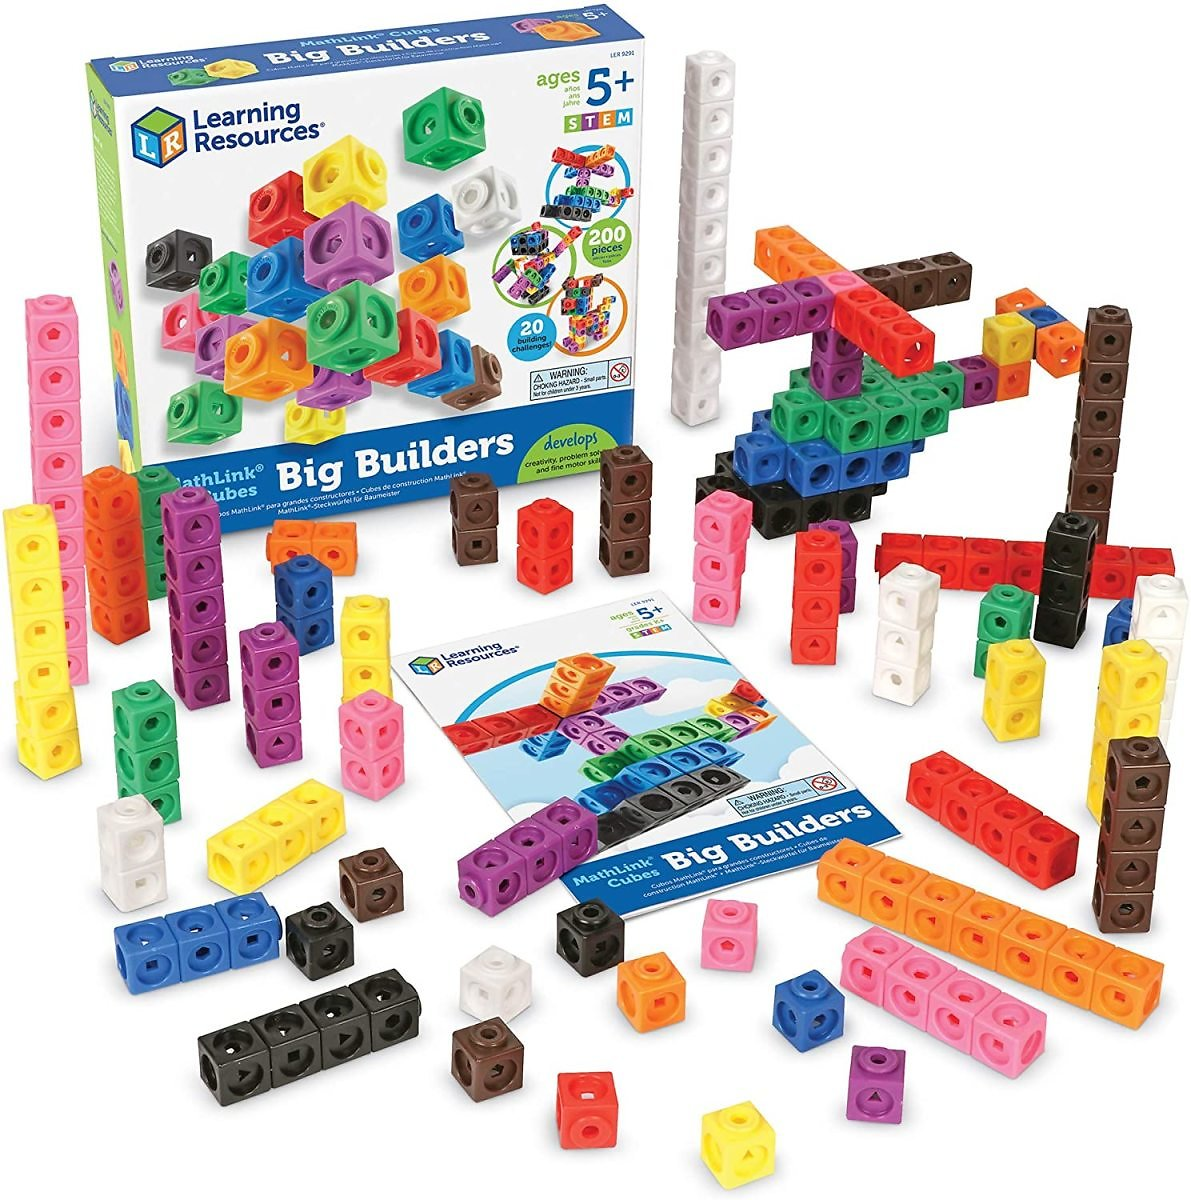 Up to 30% Off On Select Learning Resources Toys